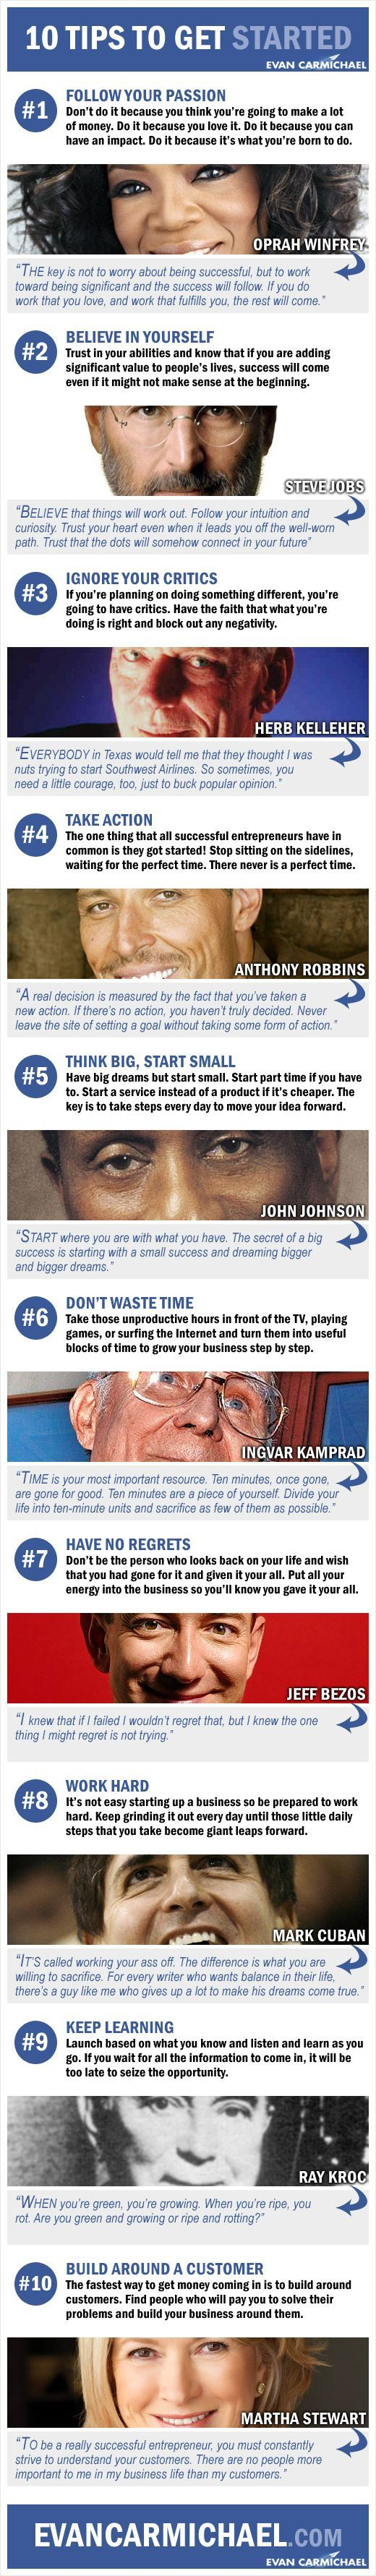 10 Life and Business Tips from Famous Celebrities! #4 is our Favorite! -